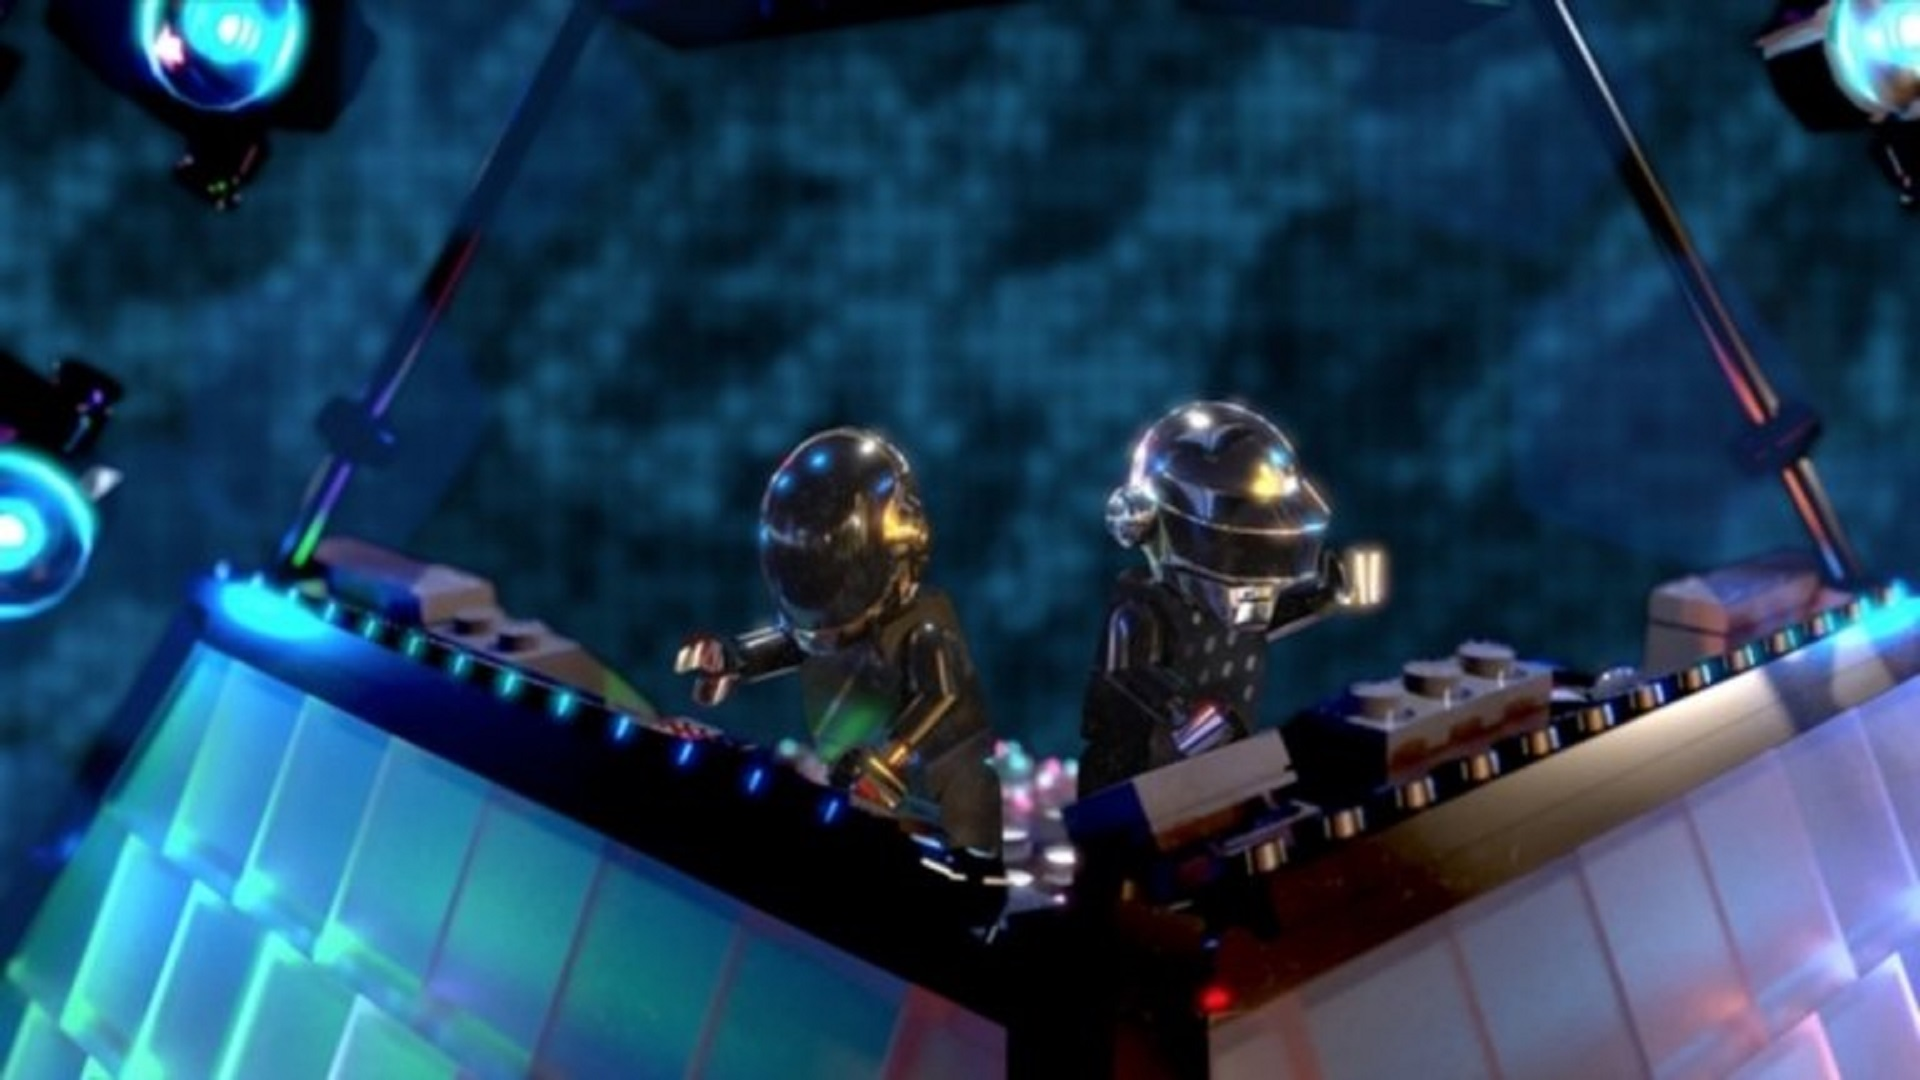 Daft Punk y Gorillaz entre los ganadores del Lego Ideas Music To Our Ears